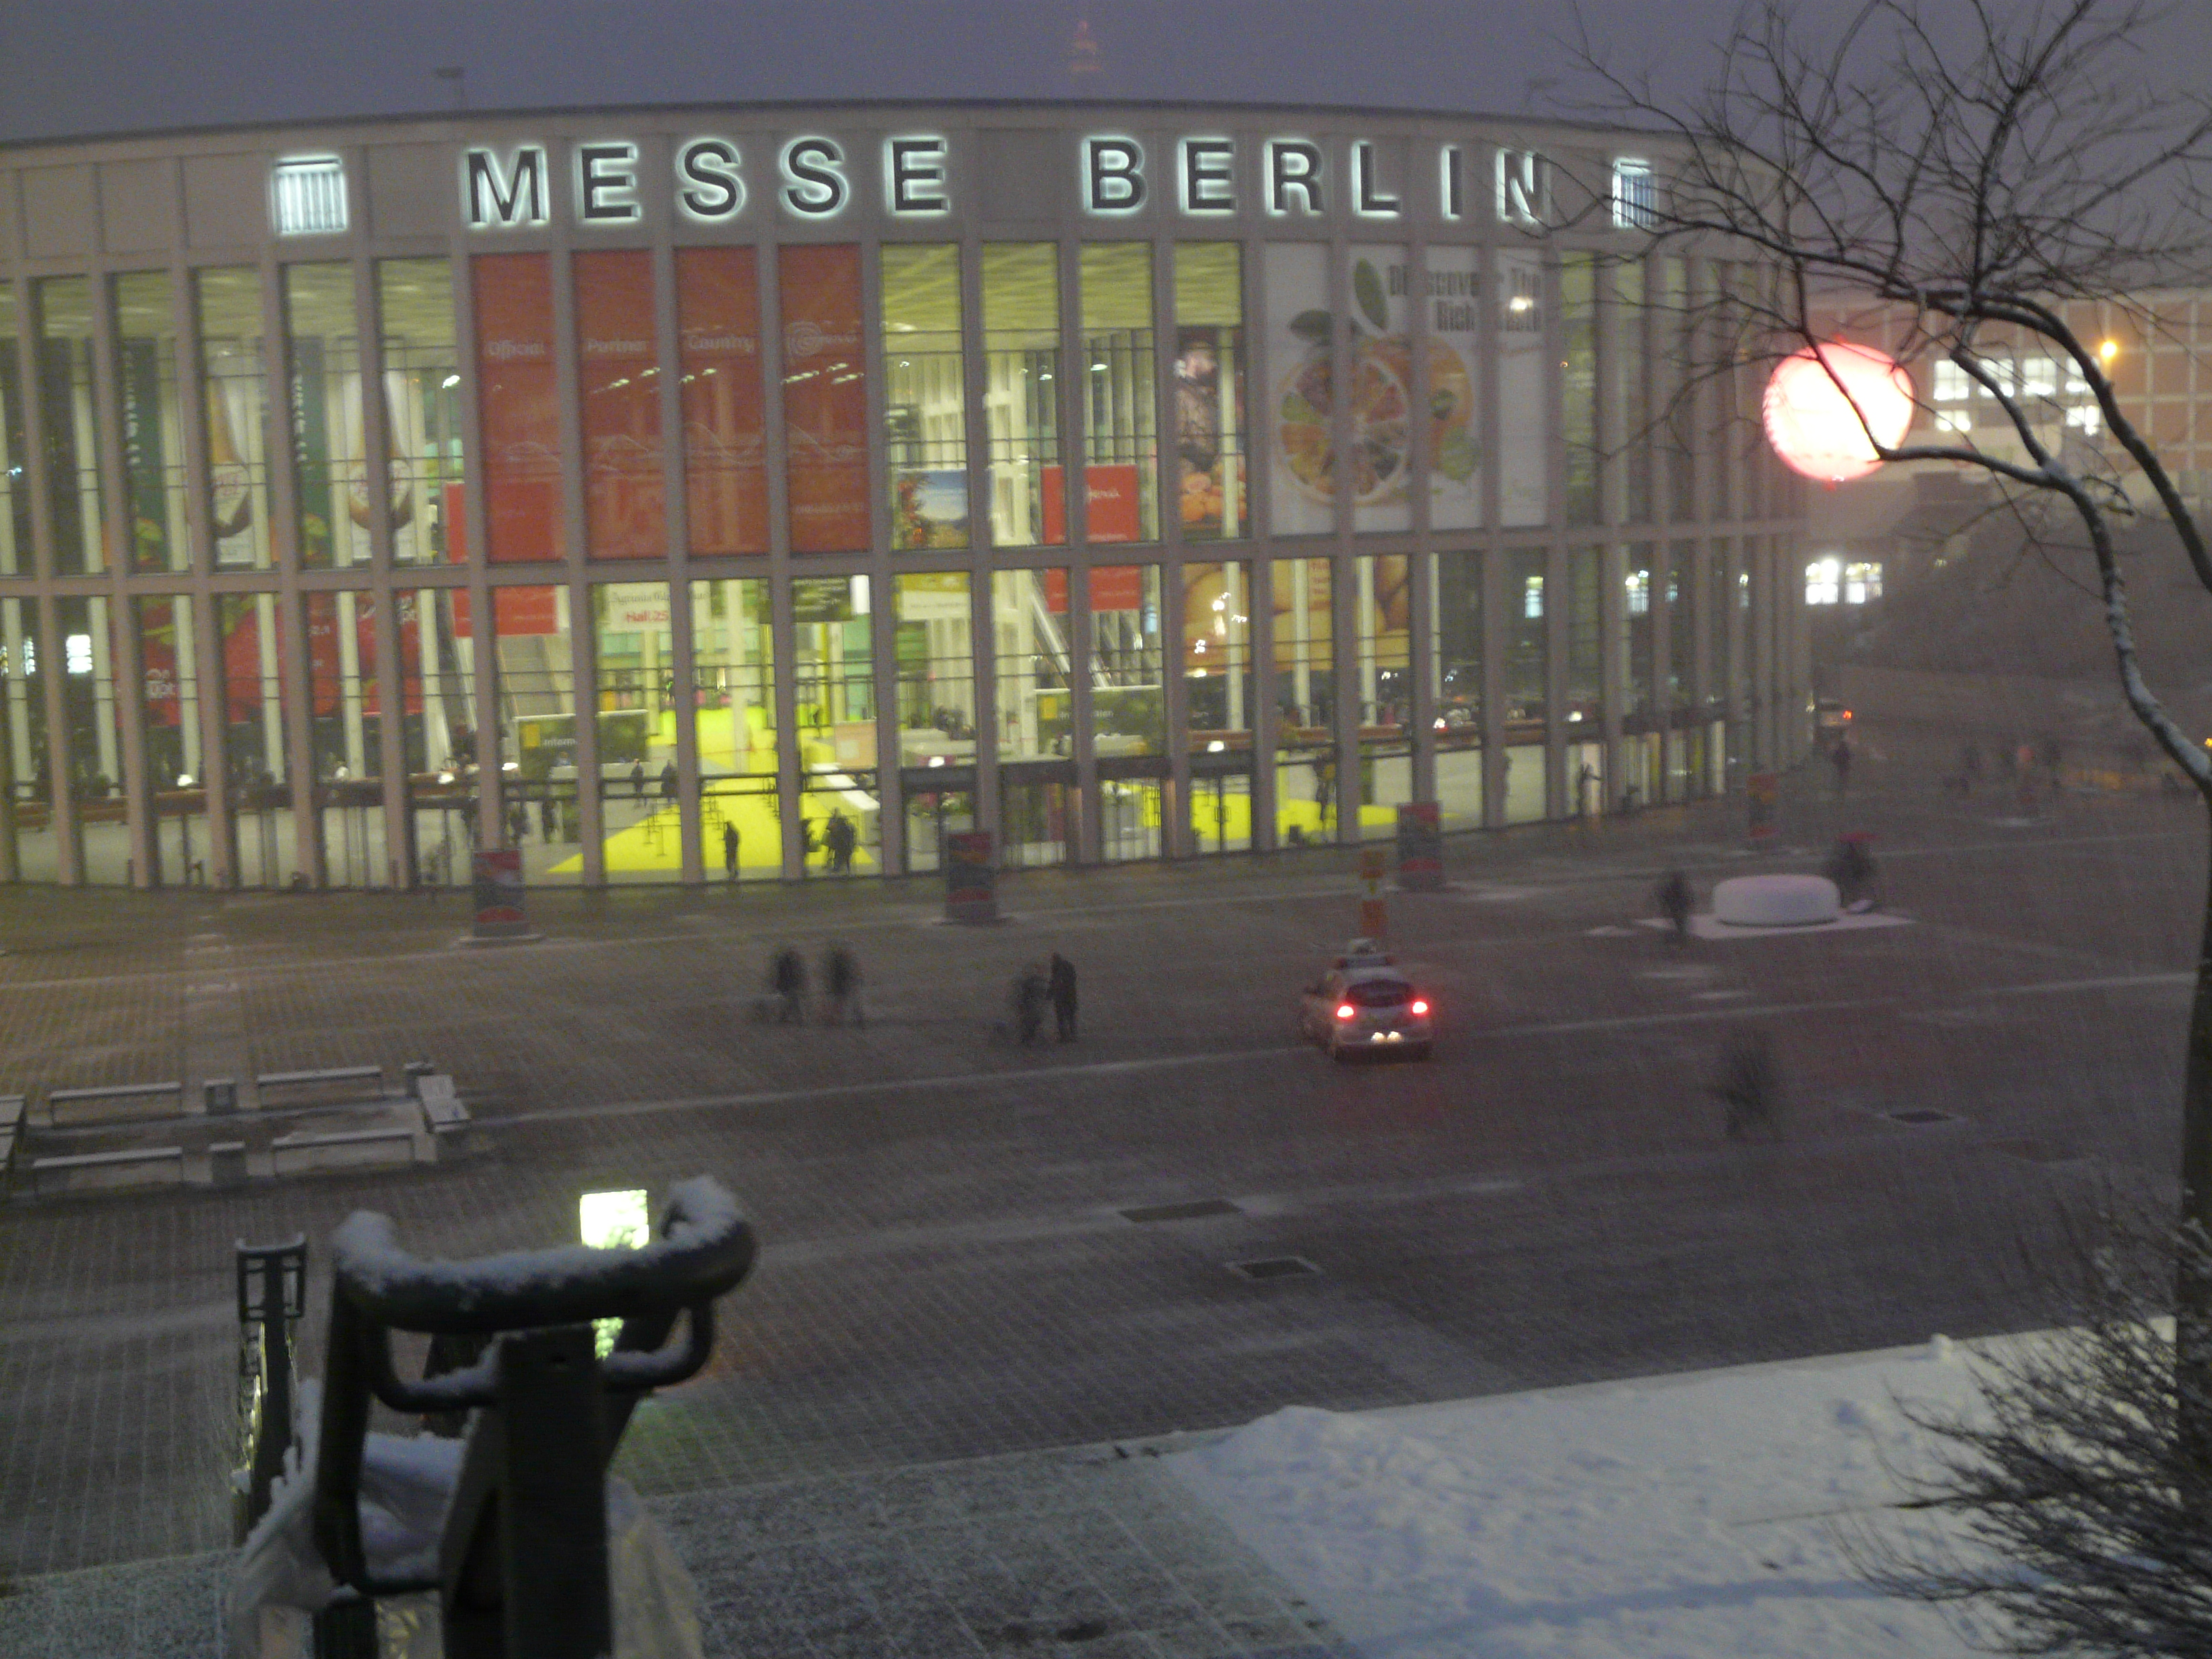 Messe Berlin gets ready for Fruit Logistica mayhem one again